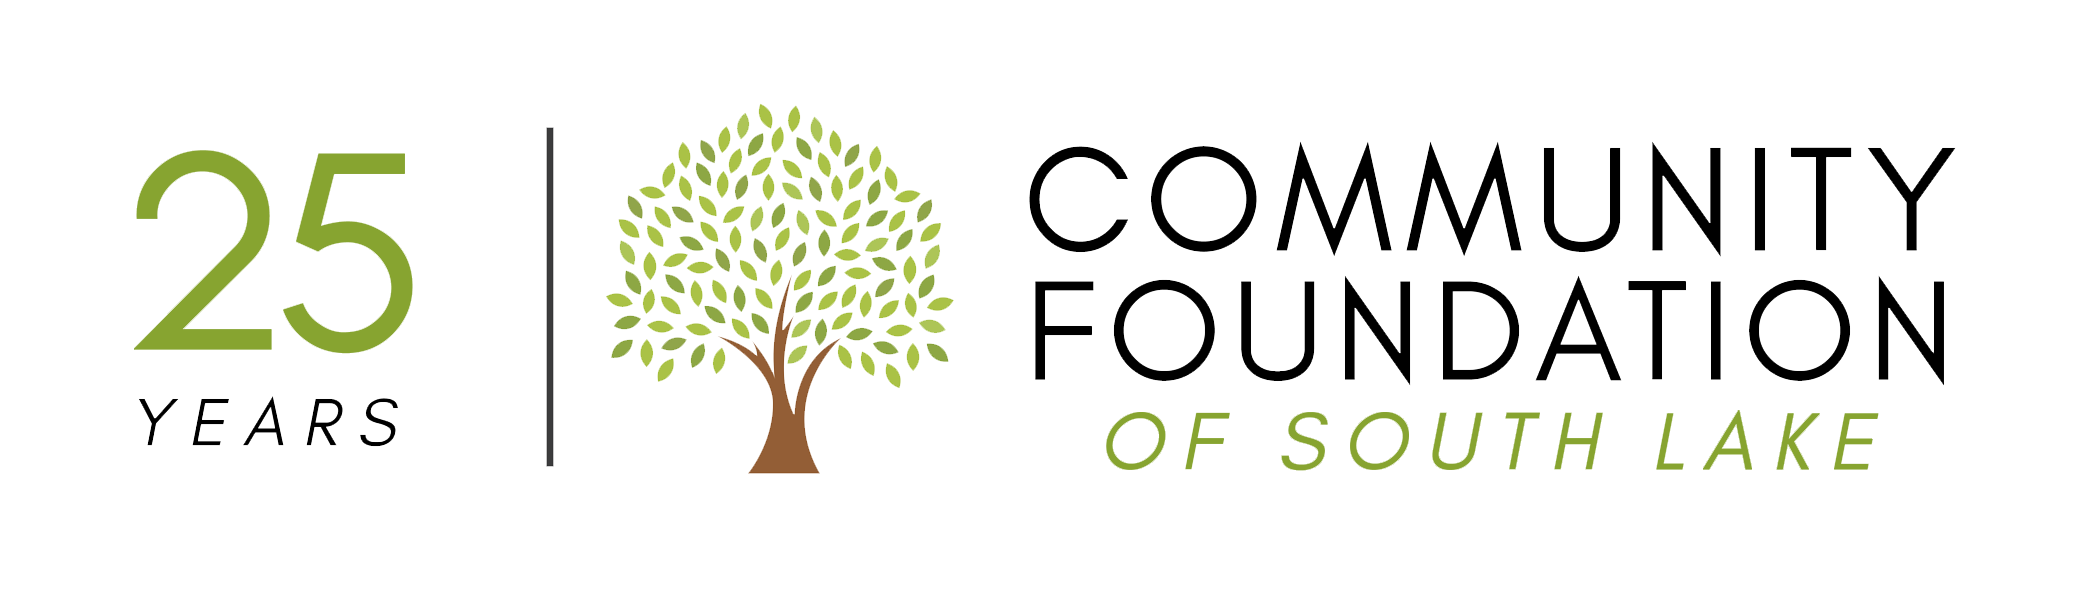 Community Foundation Of South Lake